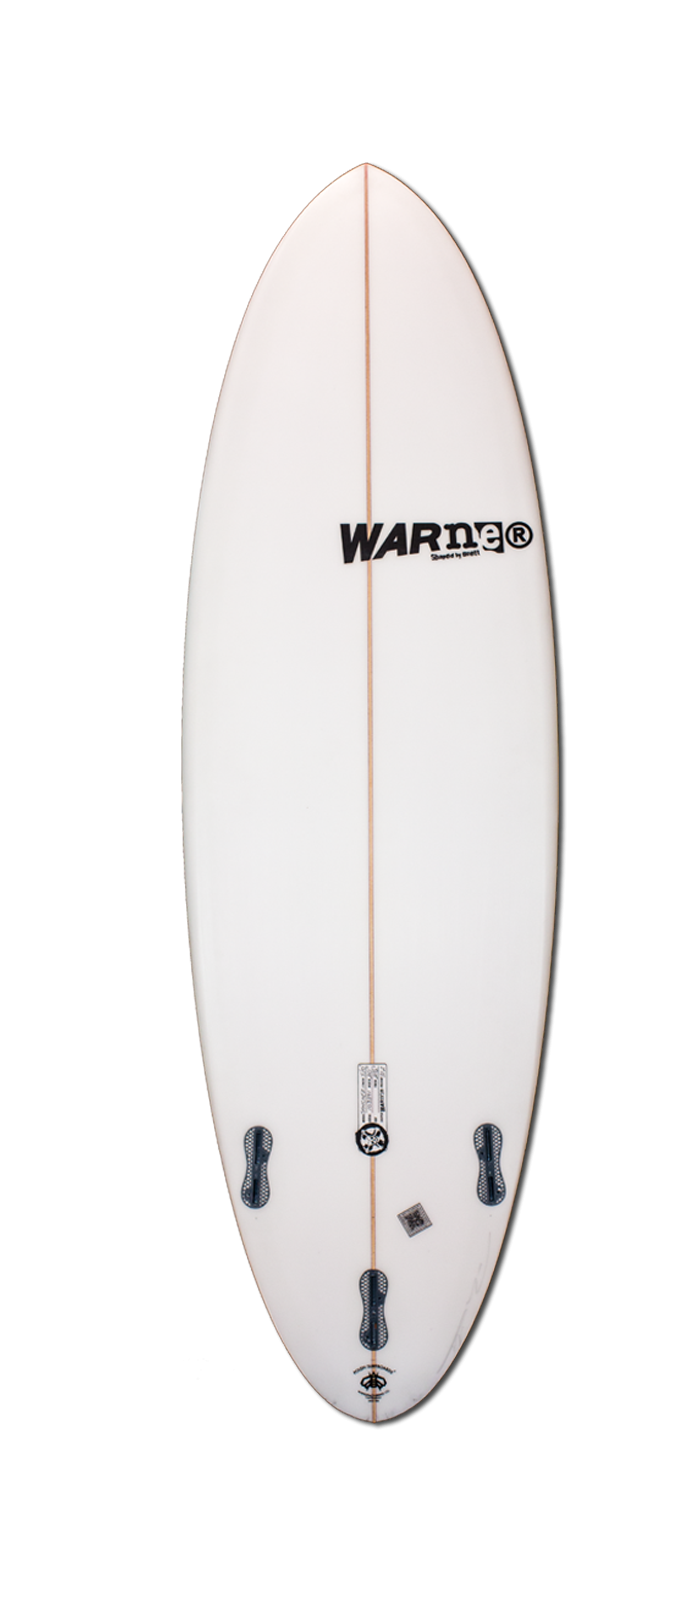 SANCHEZ surfboard model bottom